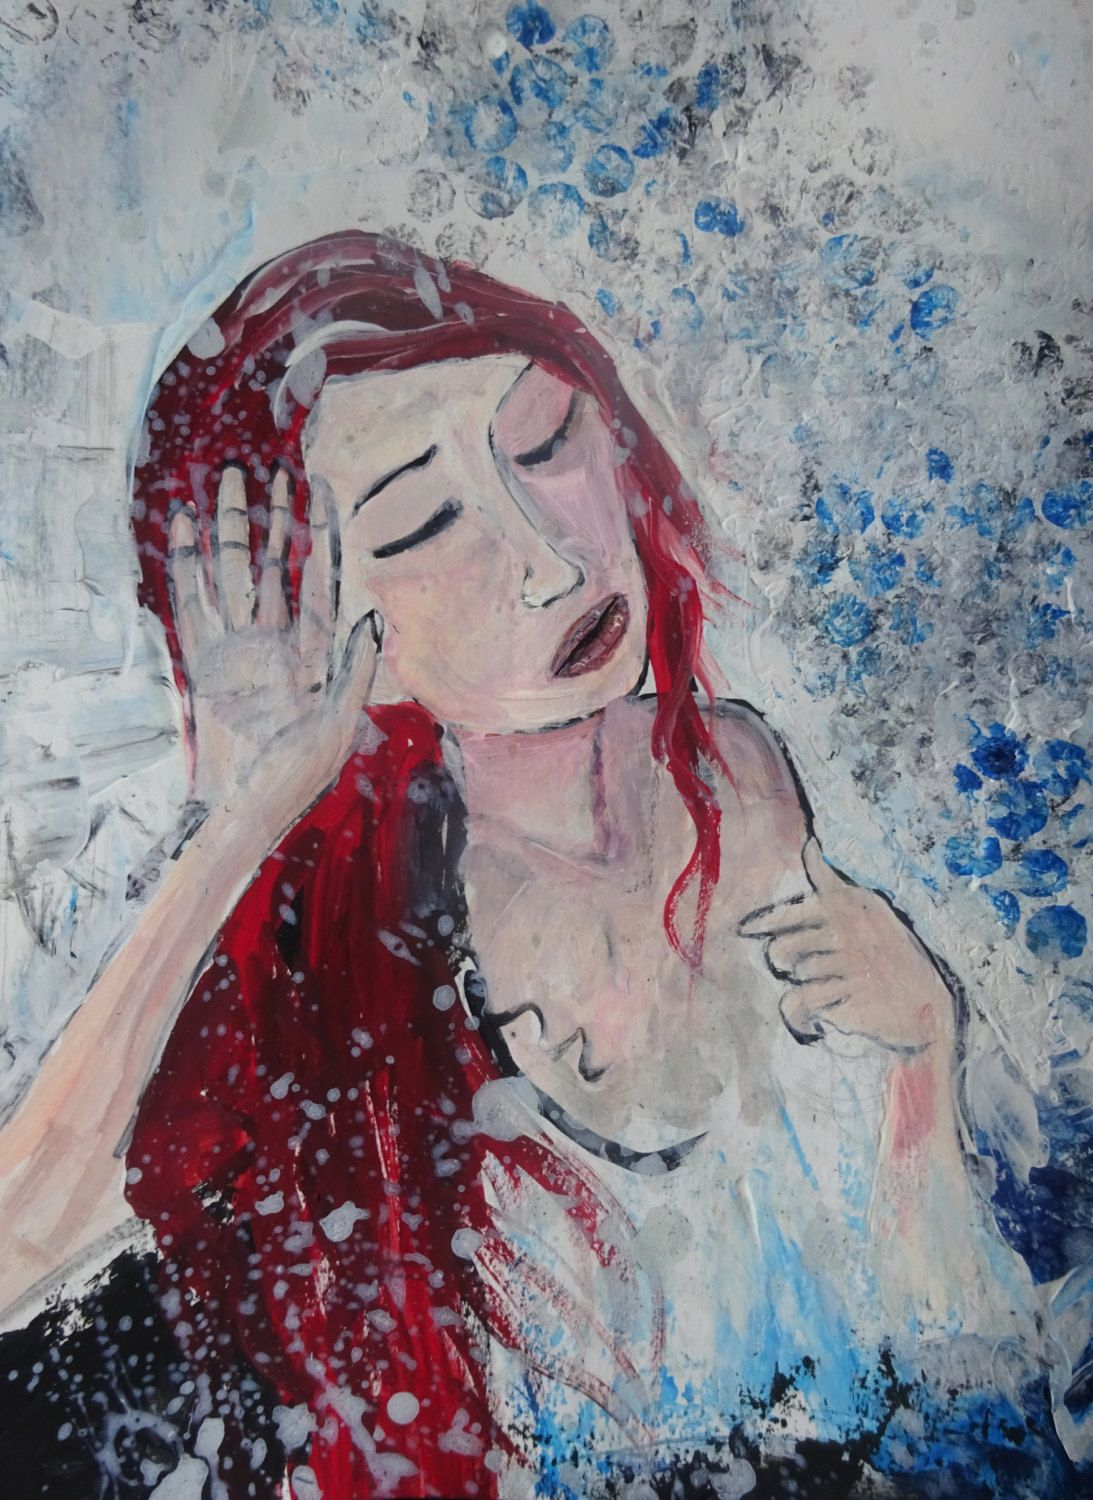 Items similar to Woman - Shower - Woman in Shower - Fine Art - UK Art - Home Decor - Wall Hanging - Discount Art - Wall Art - Gift - Red Head on Etsy & Woman - Shower - Woman in Shower - Fine Art - UK Art - Home Decor ...